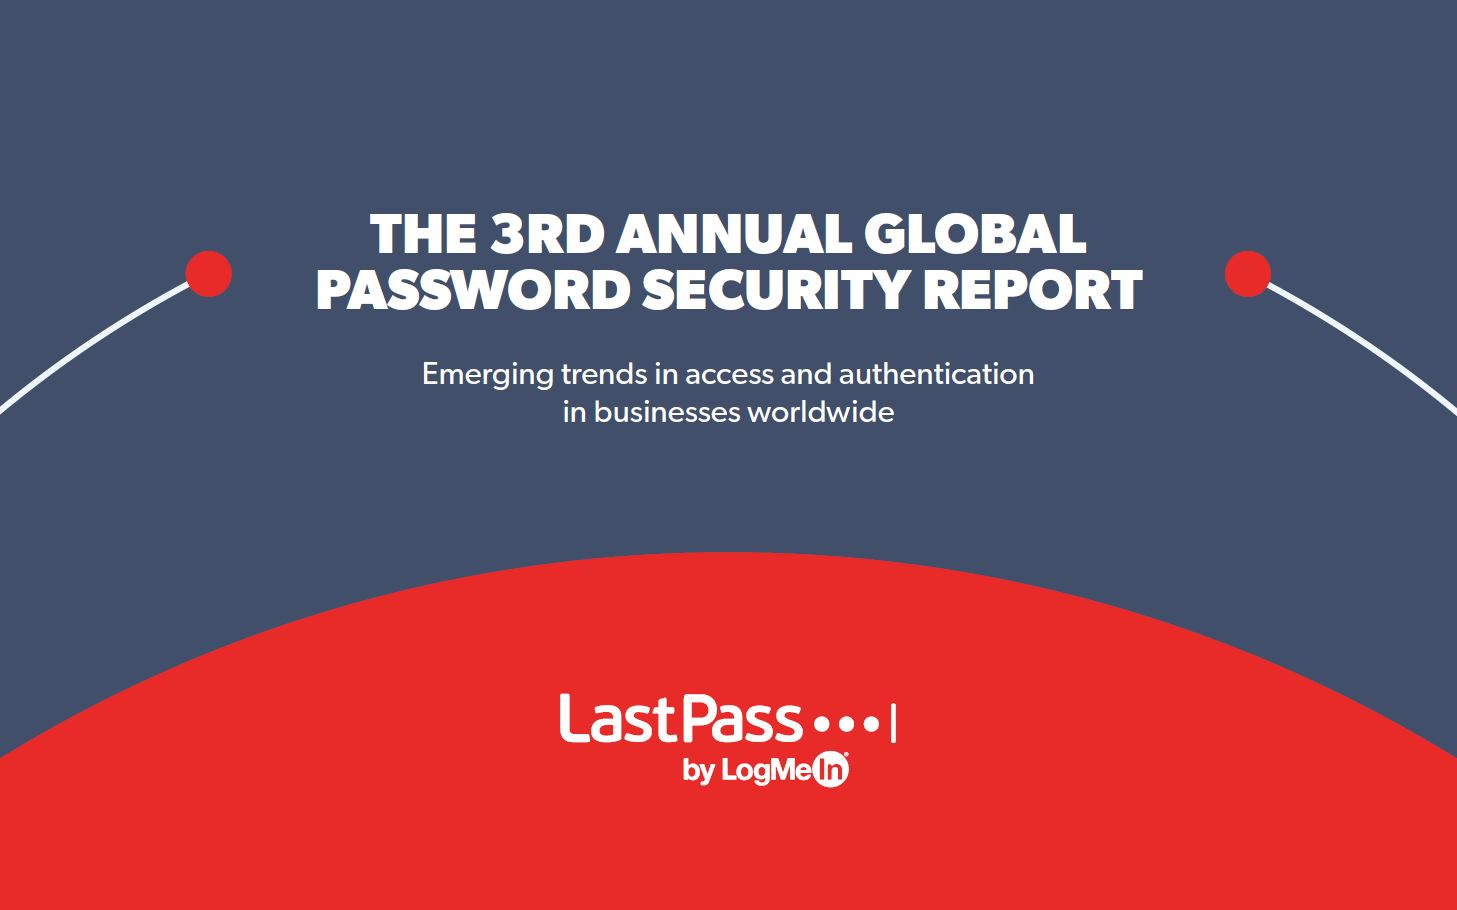 2020 Access and Authentication Trends in the World of Business